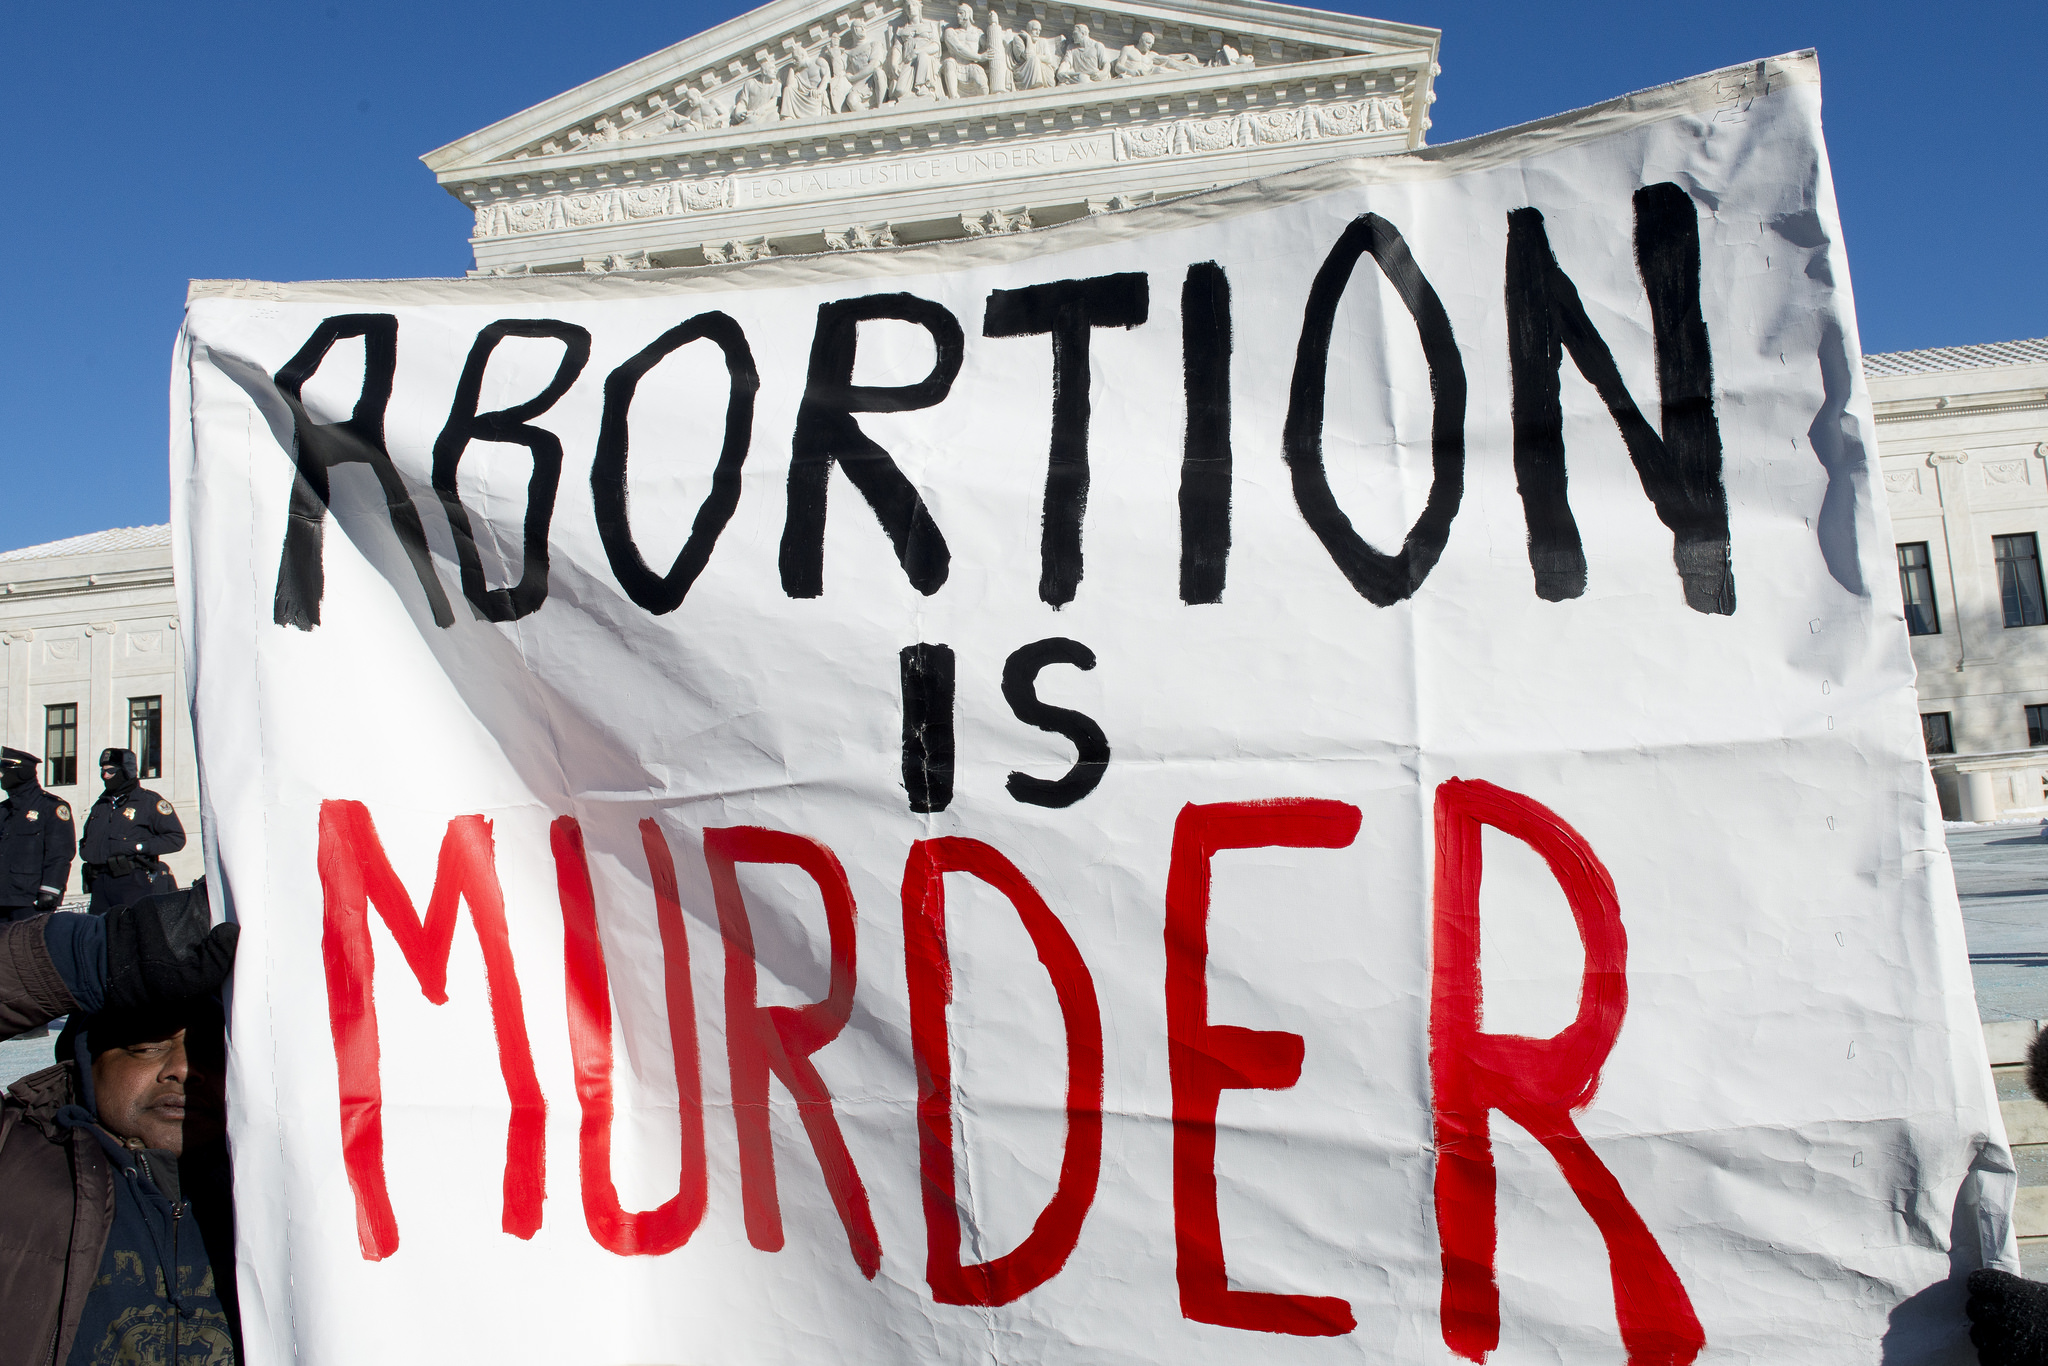 is abortion murdering essays excel homework is abortion murdering essays